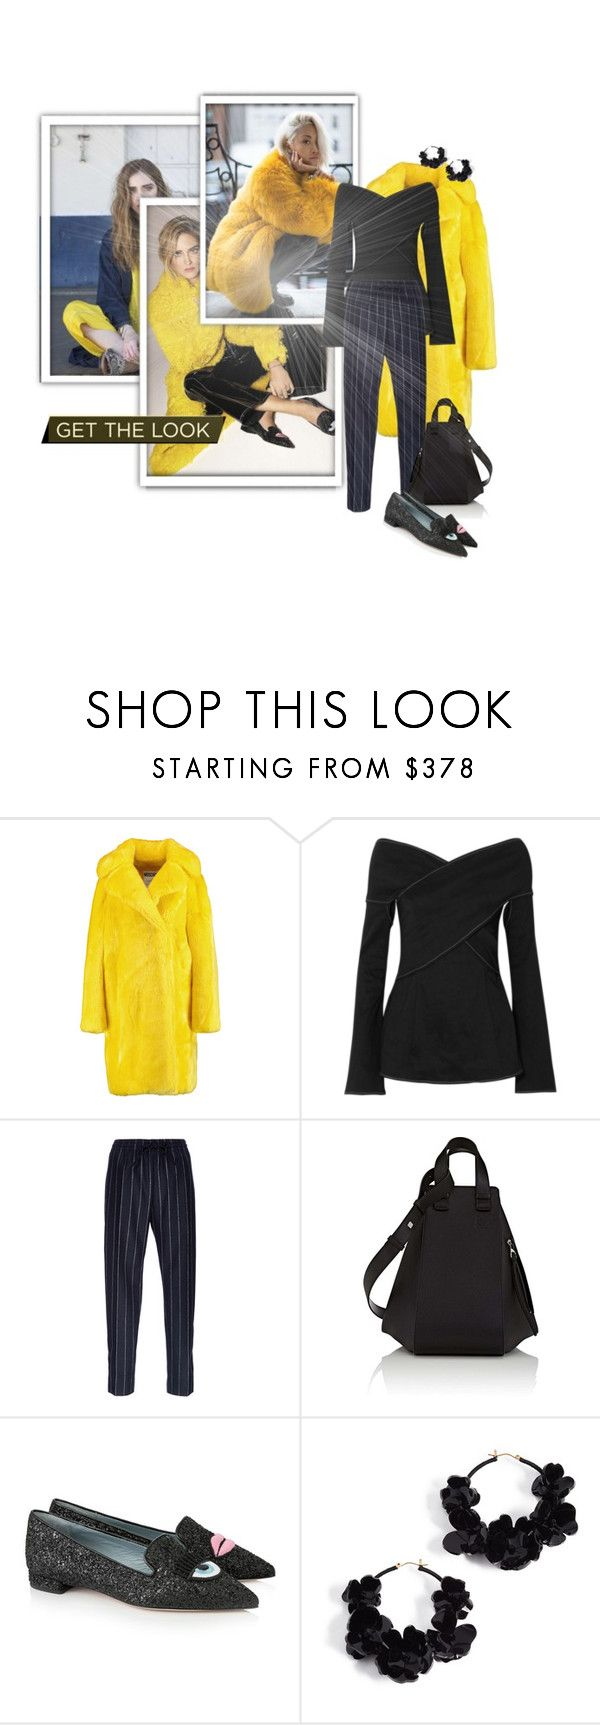 """Get the Look - Moschino Faux fur coat"" by ivyargmagno ❤ liked on Polyvore featuring Chiara Ferragni, Moschino, Beaufille, Joseph, Loewe and Oscar de la Renta"